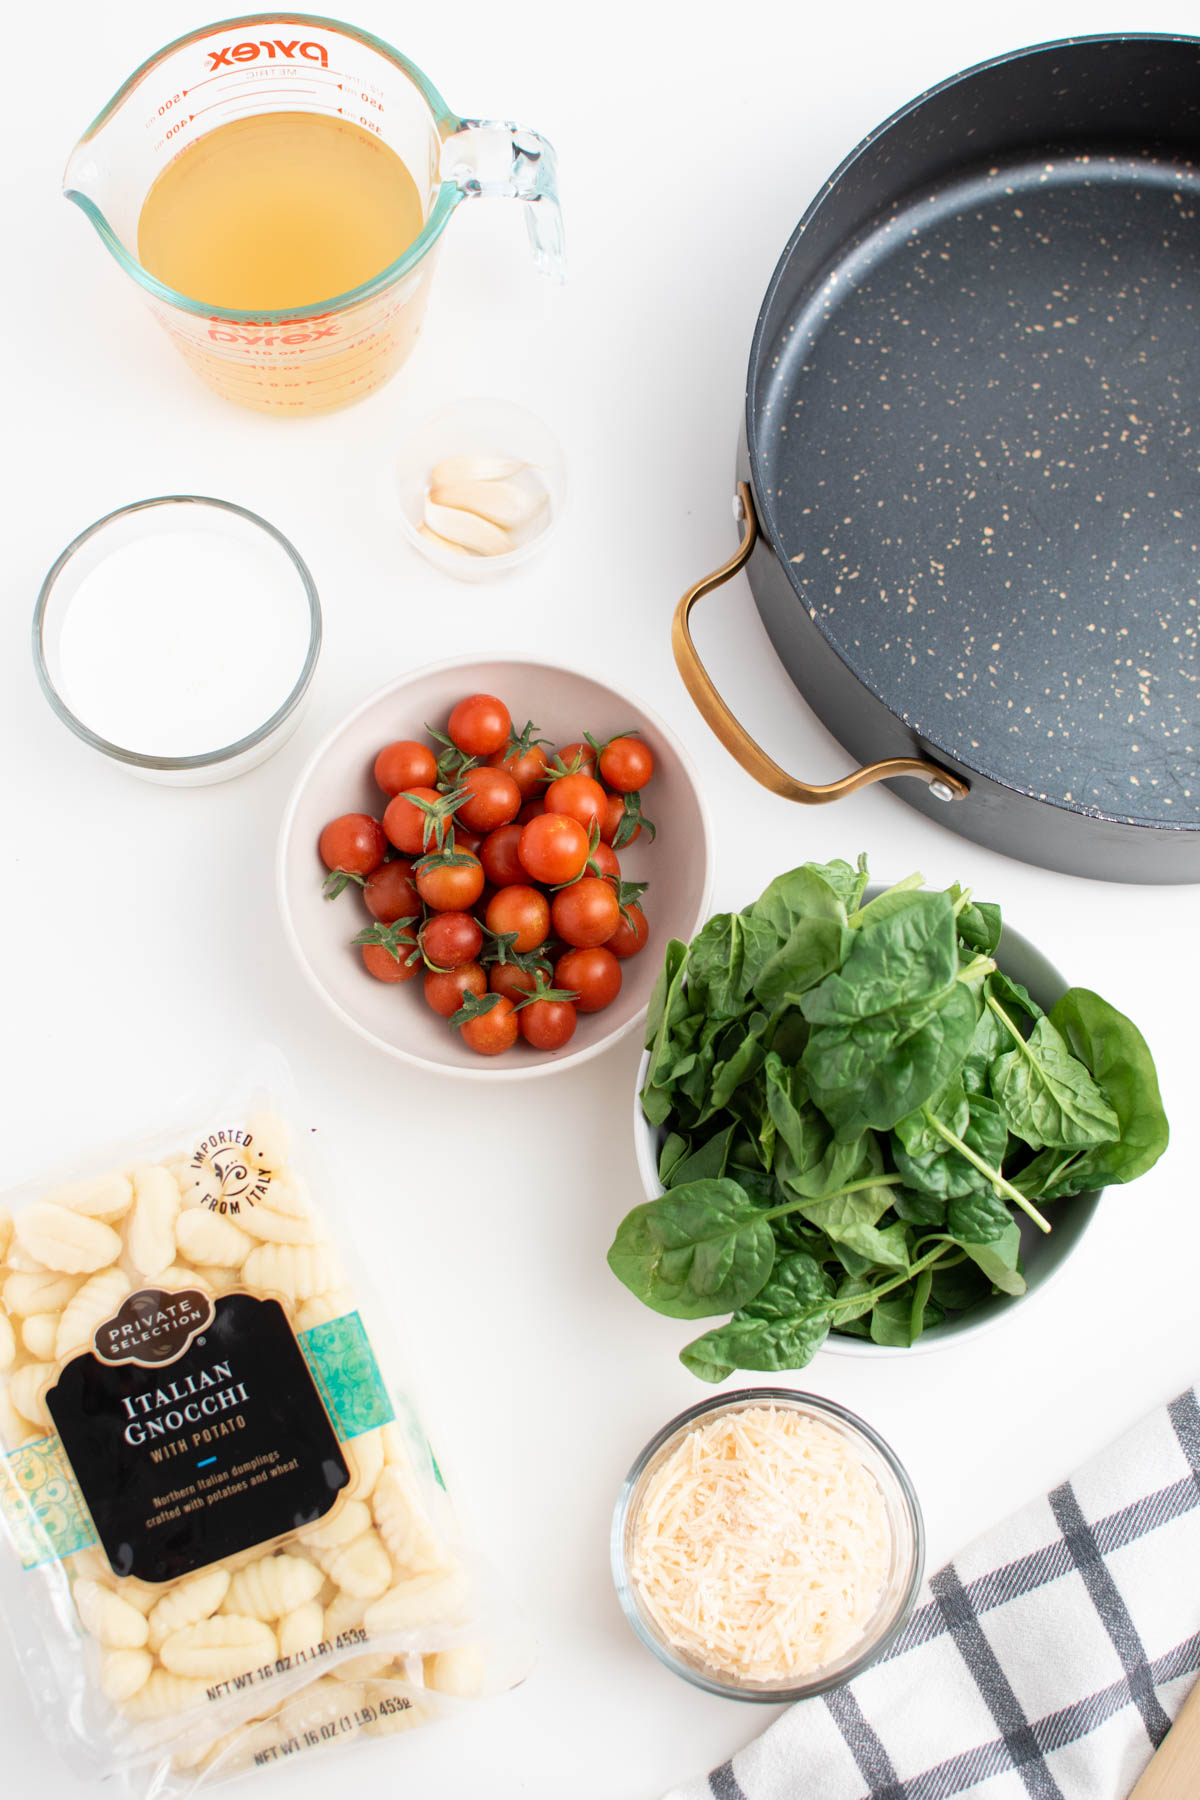 Creamy gnocchi ingredients including tomatoes, spinach, cheese, and cream on white table.